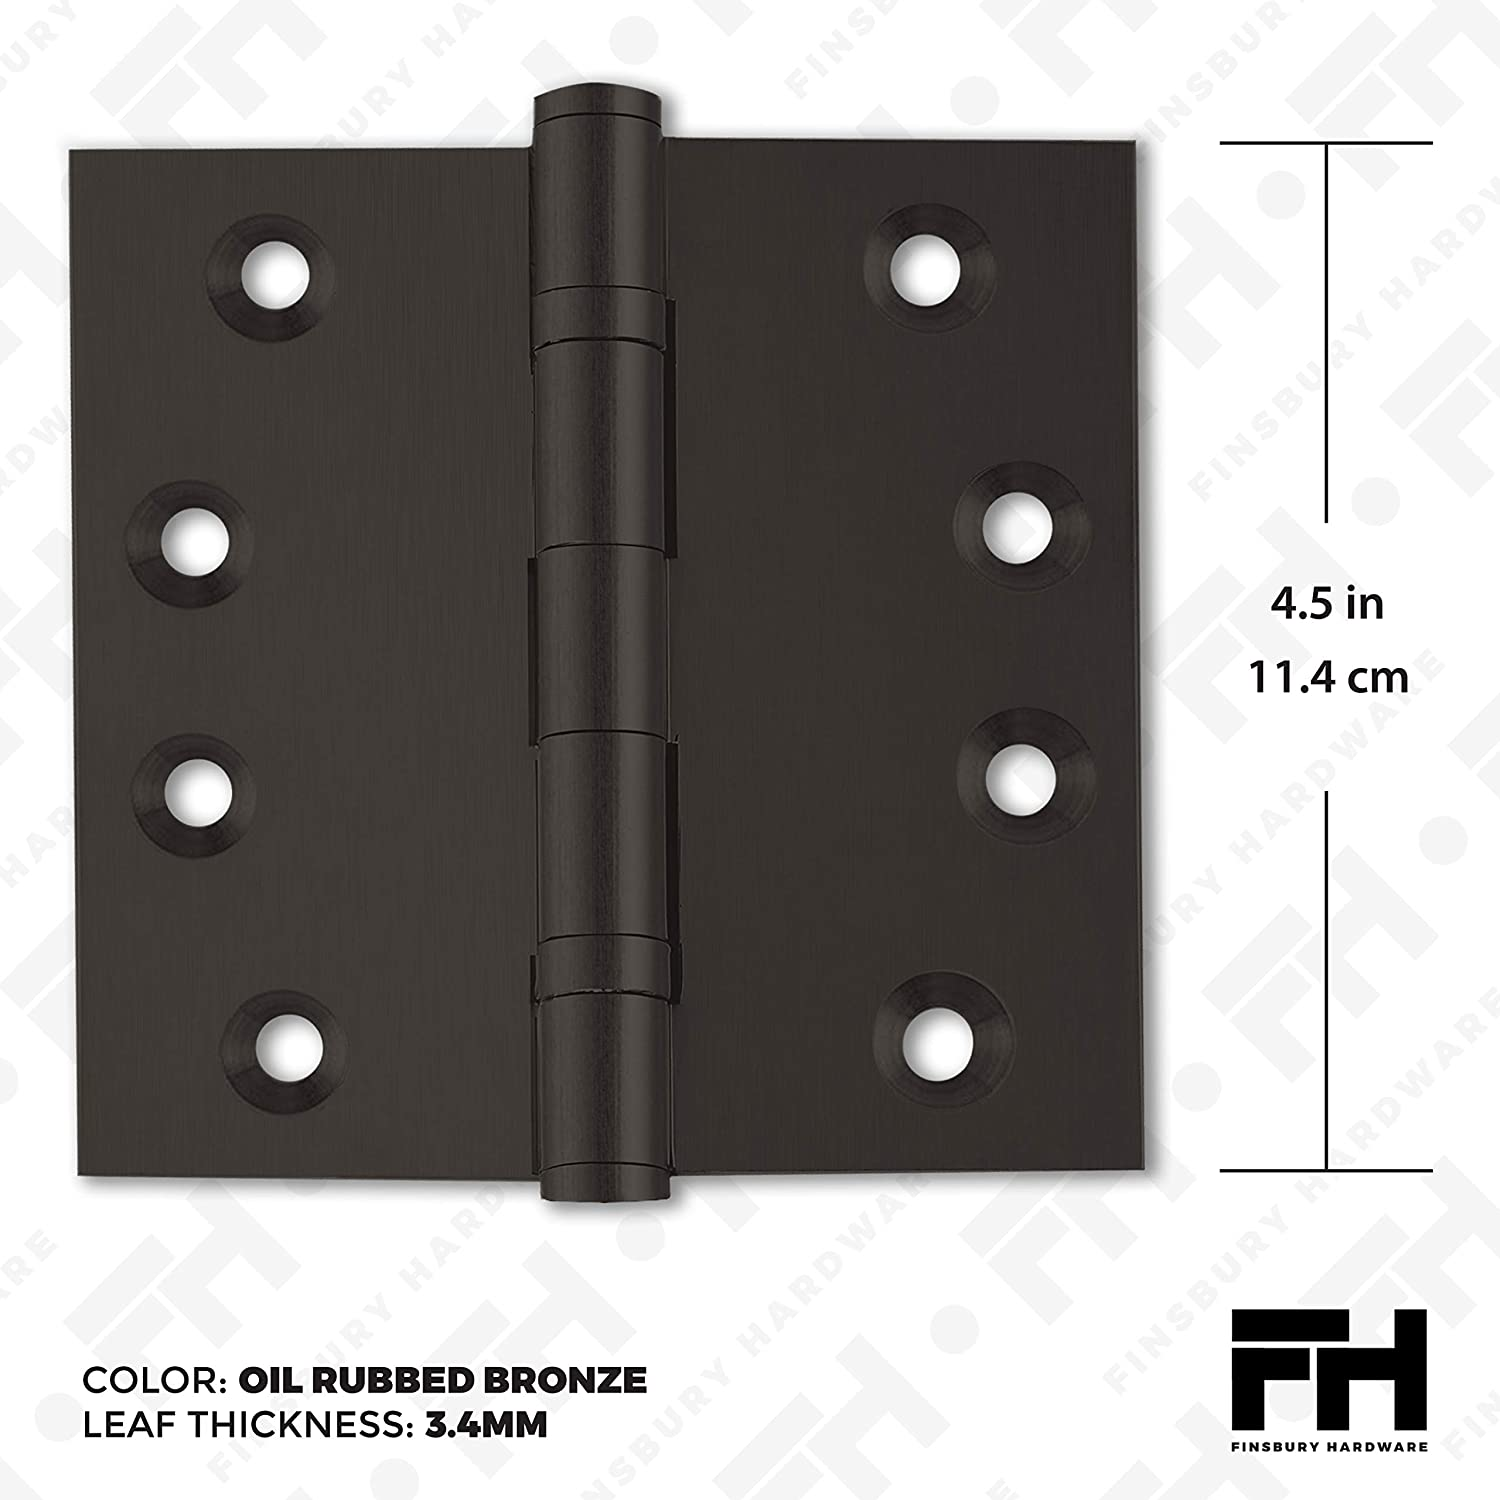 Set of 3 Hinges Oil-Rubbed Bronze Finsbury Hardware Heavy Duty Door Hinge Bronze Ball Bearing 4.5 x 4.5 Inch Solid Brass Heavy Duty with Free Decorative Screw-on Tips Included